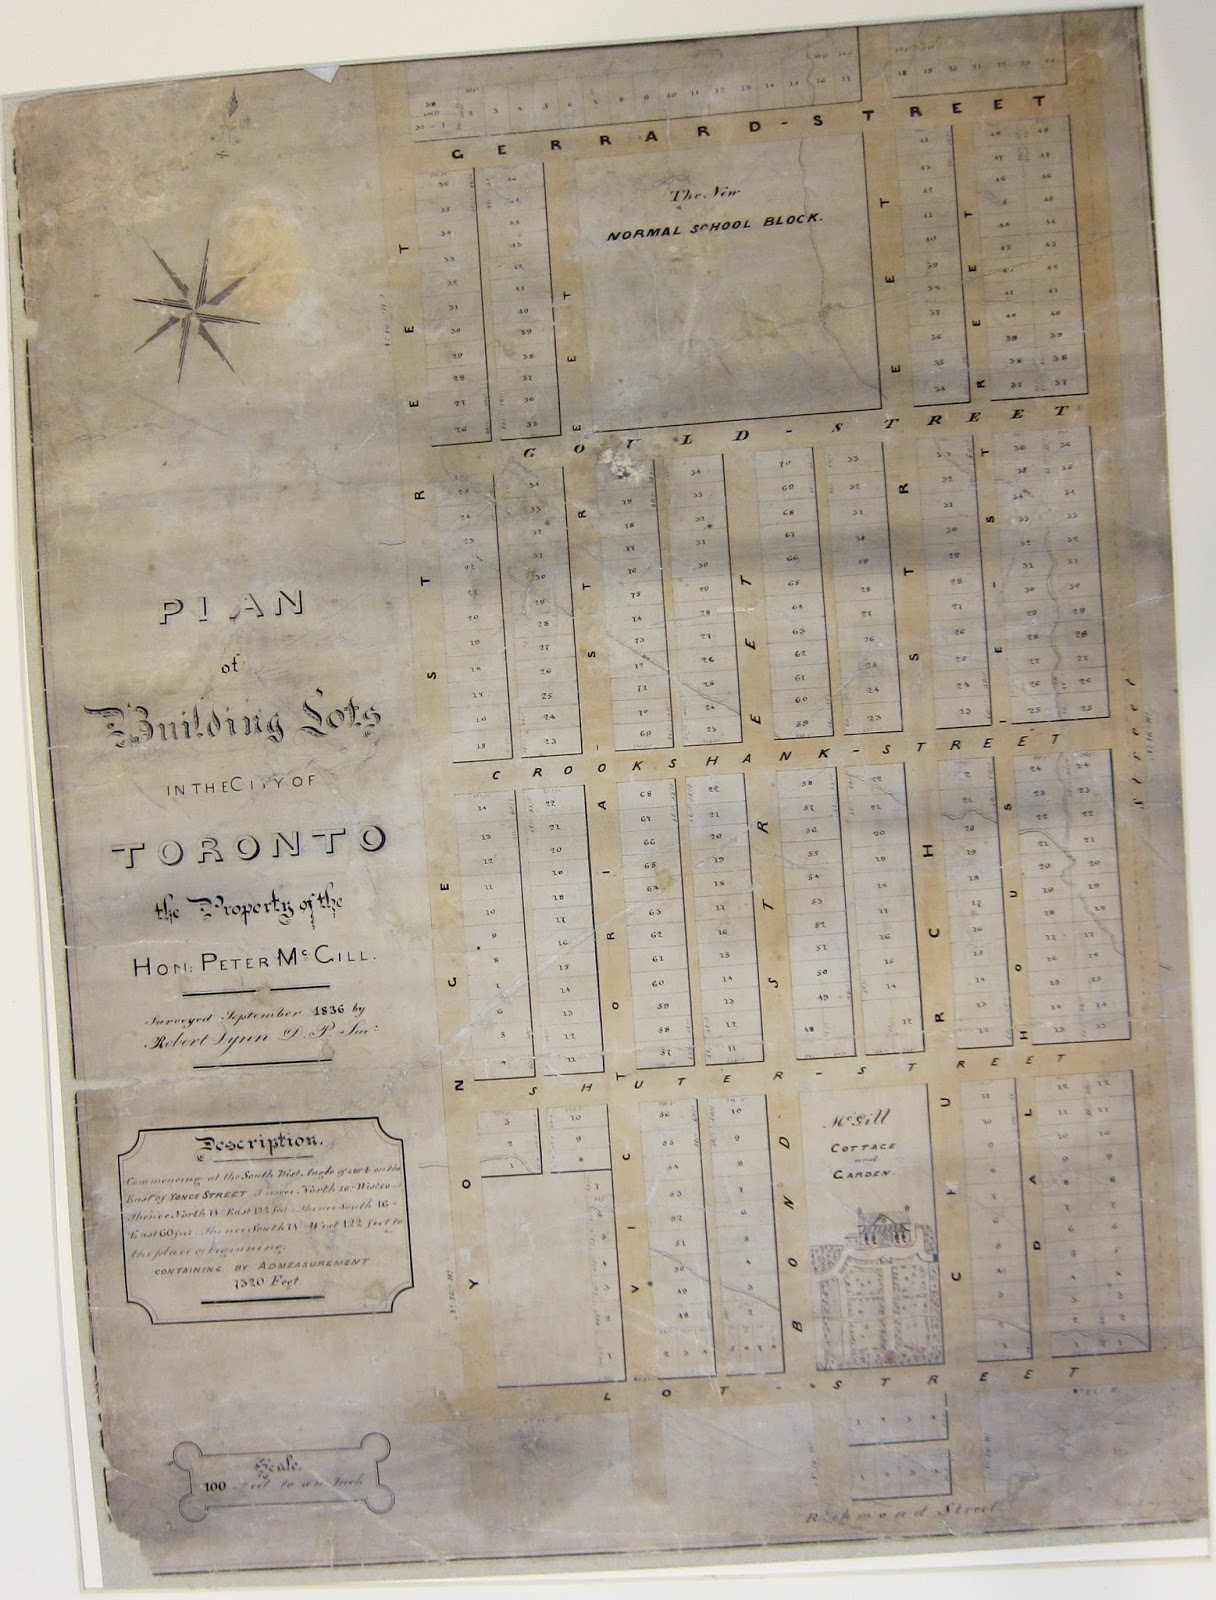 Map: an 1836 subdivision plan by Robert Lynn of lands held in Toronto by Peter McGill, including where Ryerson sits today